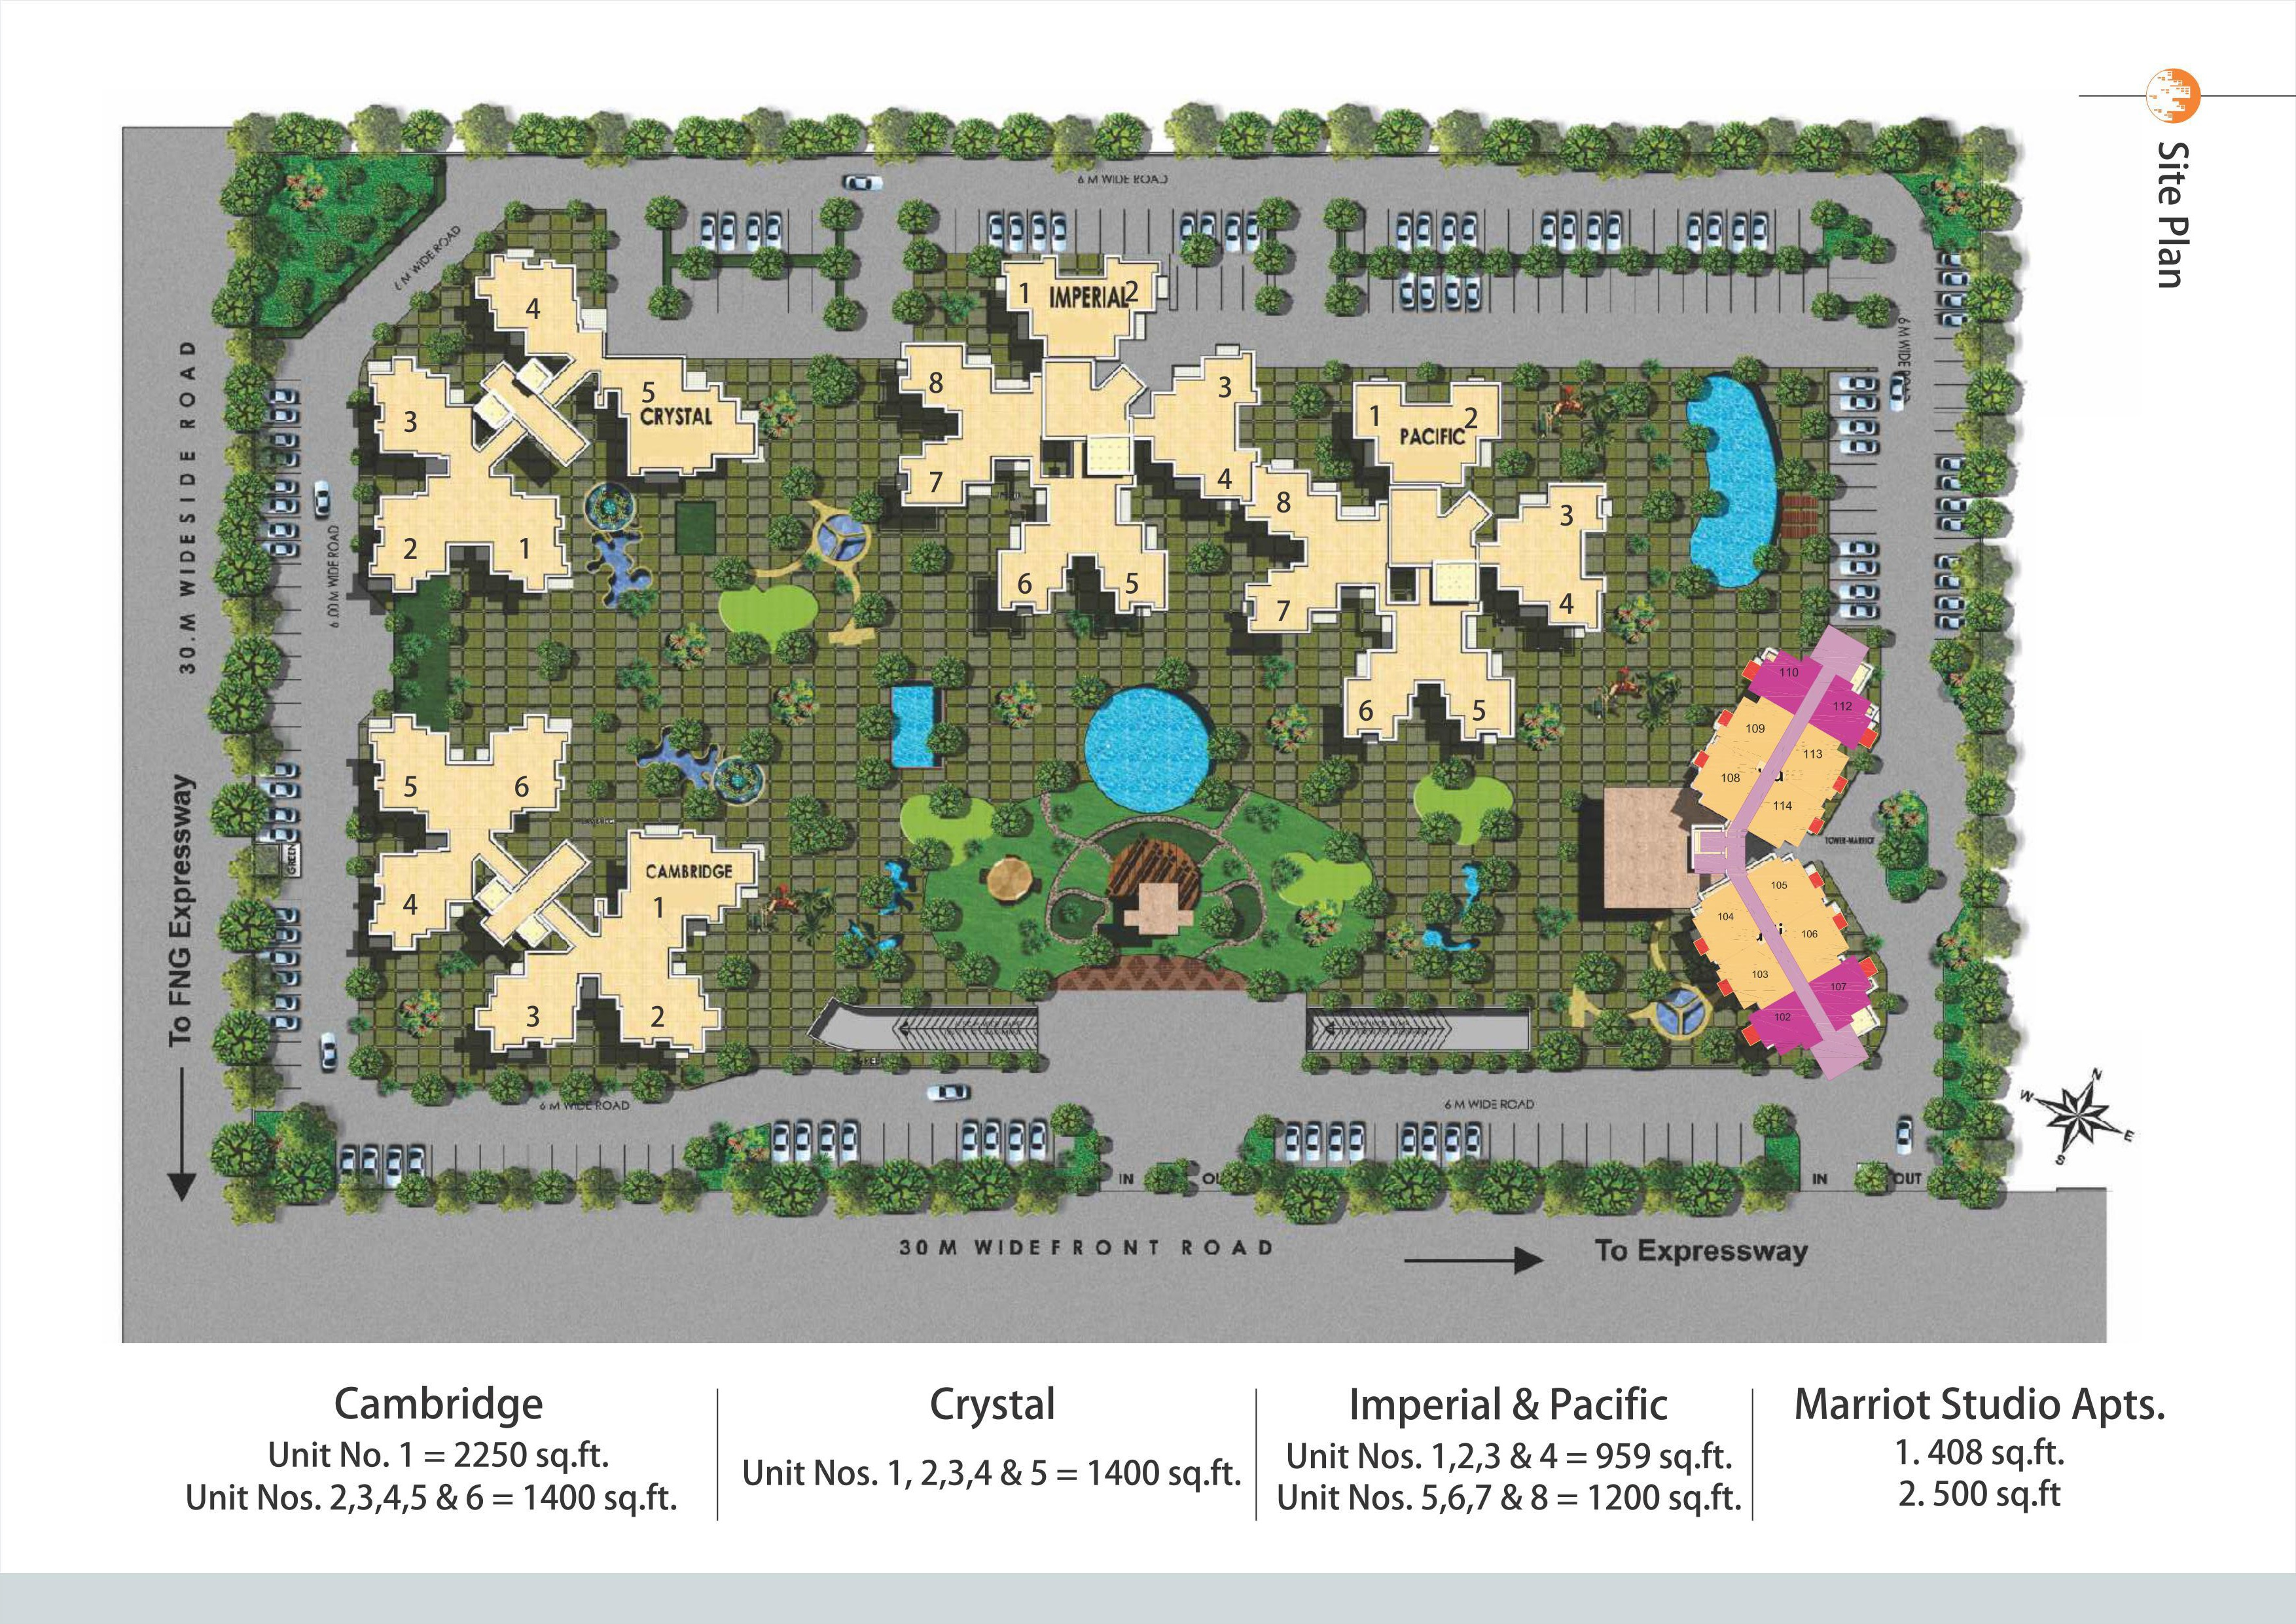 master-plan-image-Picture-urbtech-xaviers-2771189